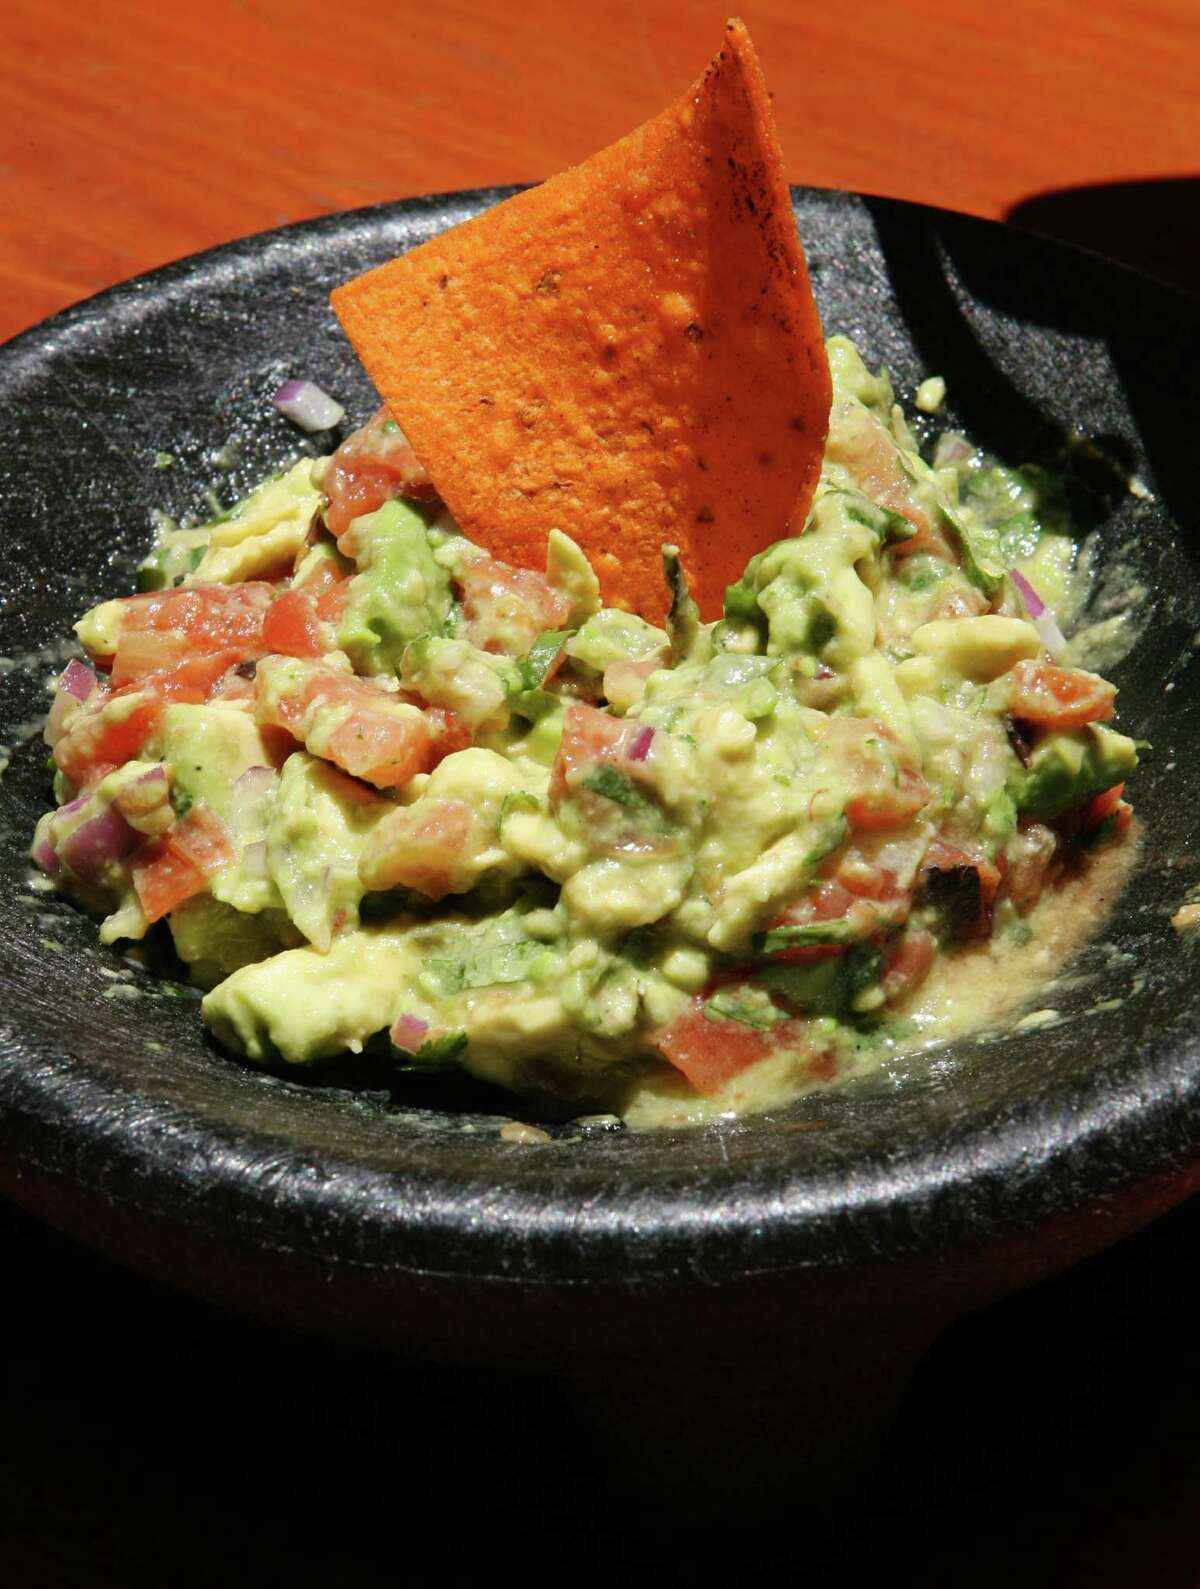 Guacamole made at tableside